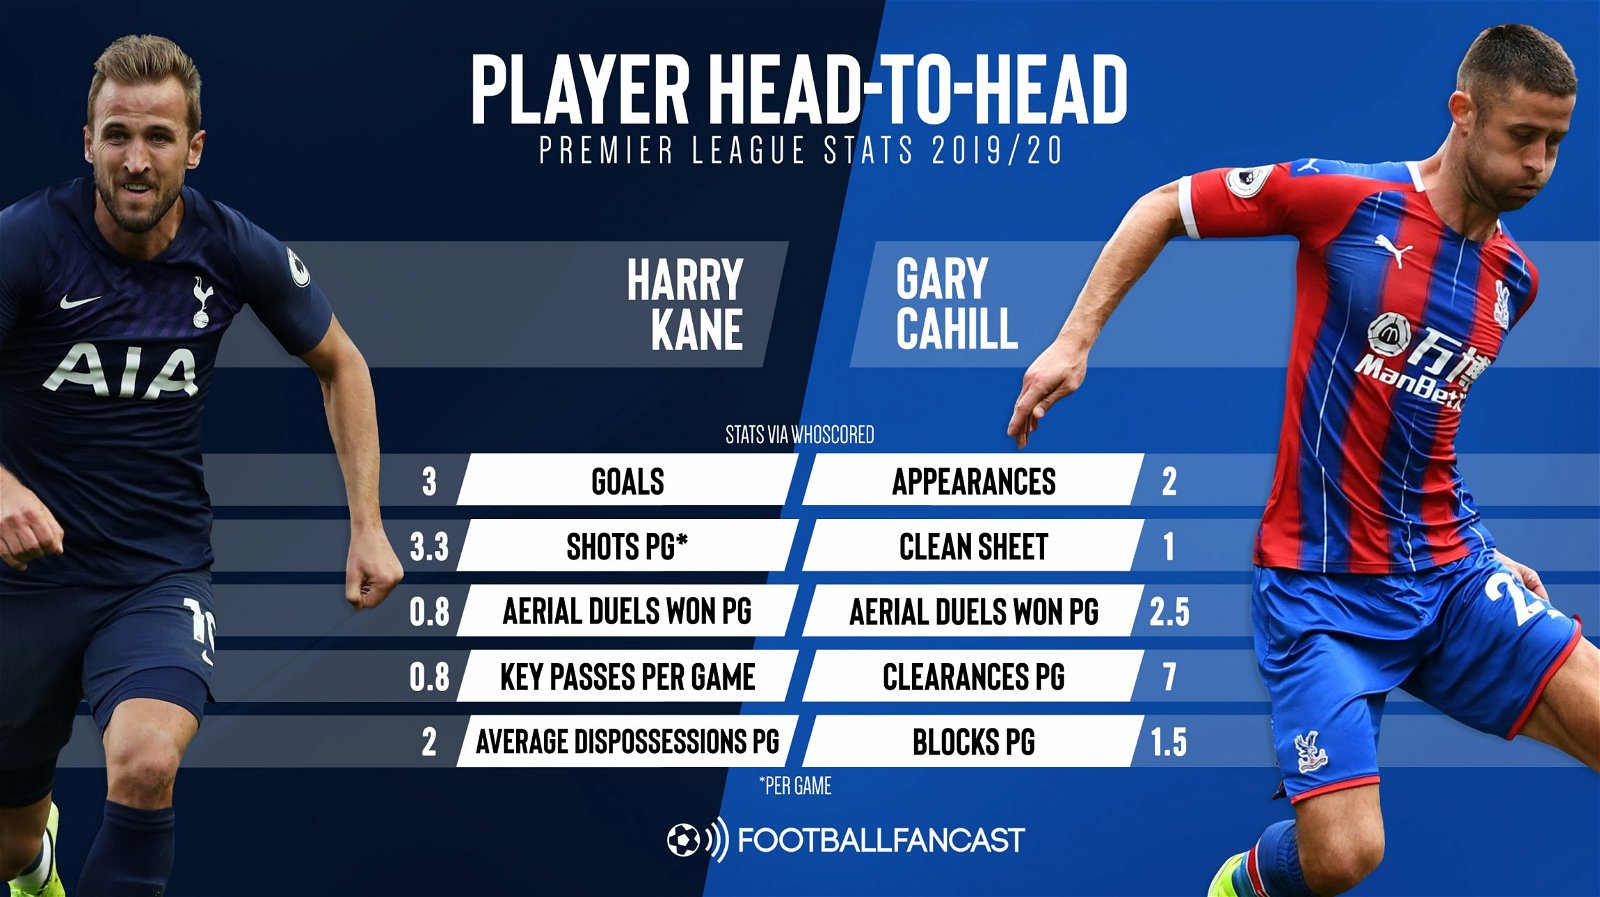 Harry Kane vs Gary Cahill PL 2019 20 - The key battle Pochettino needs £200,000-a-week Tottenham man to win vs Crystal Palace - opinion